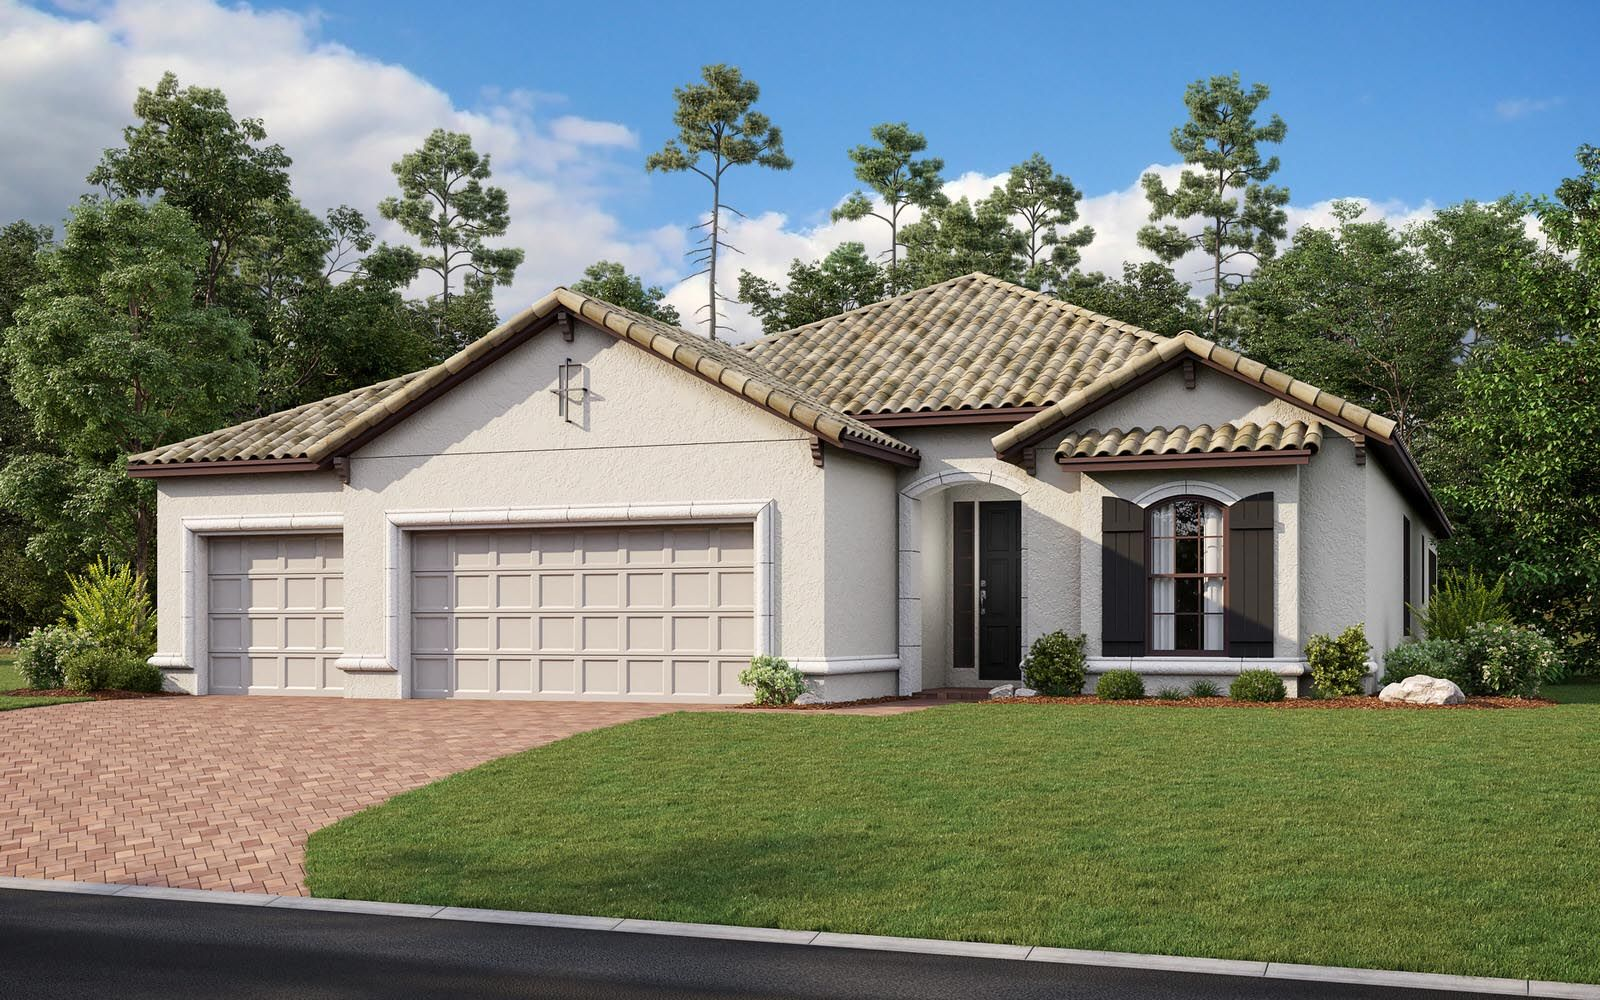 Exterior featured in the Lazio 3 car Plan By Taylor Morrison in Naples, FL